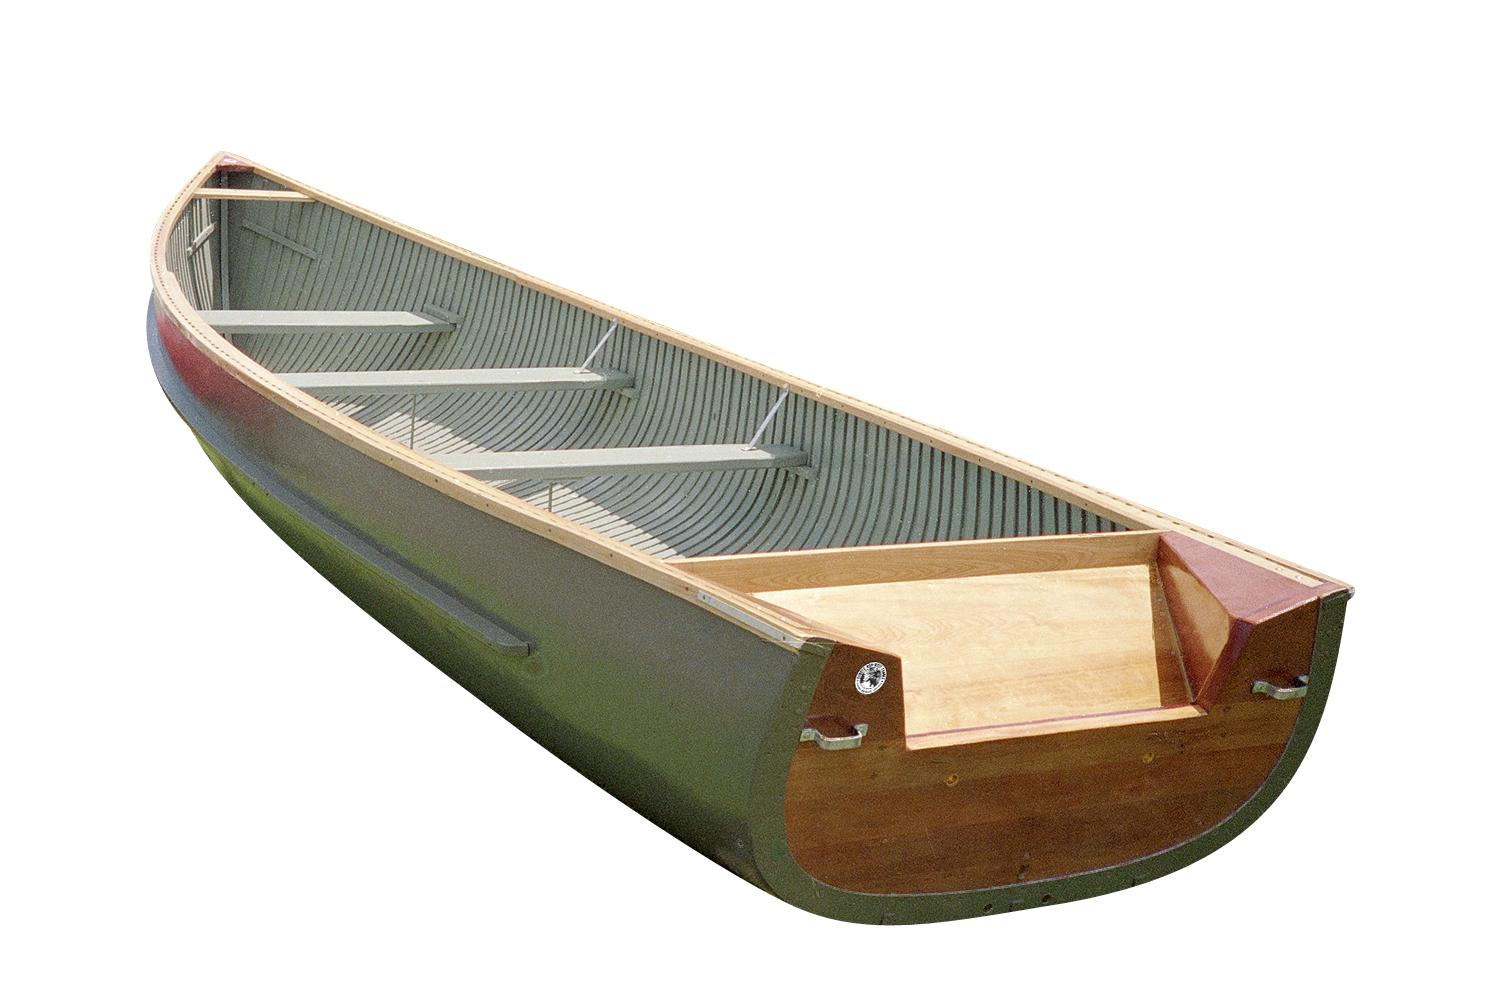 Inventory from Nor-West Canoes and oem-parts NWC Motorsports